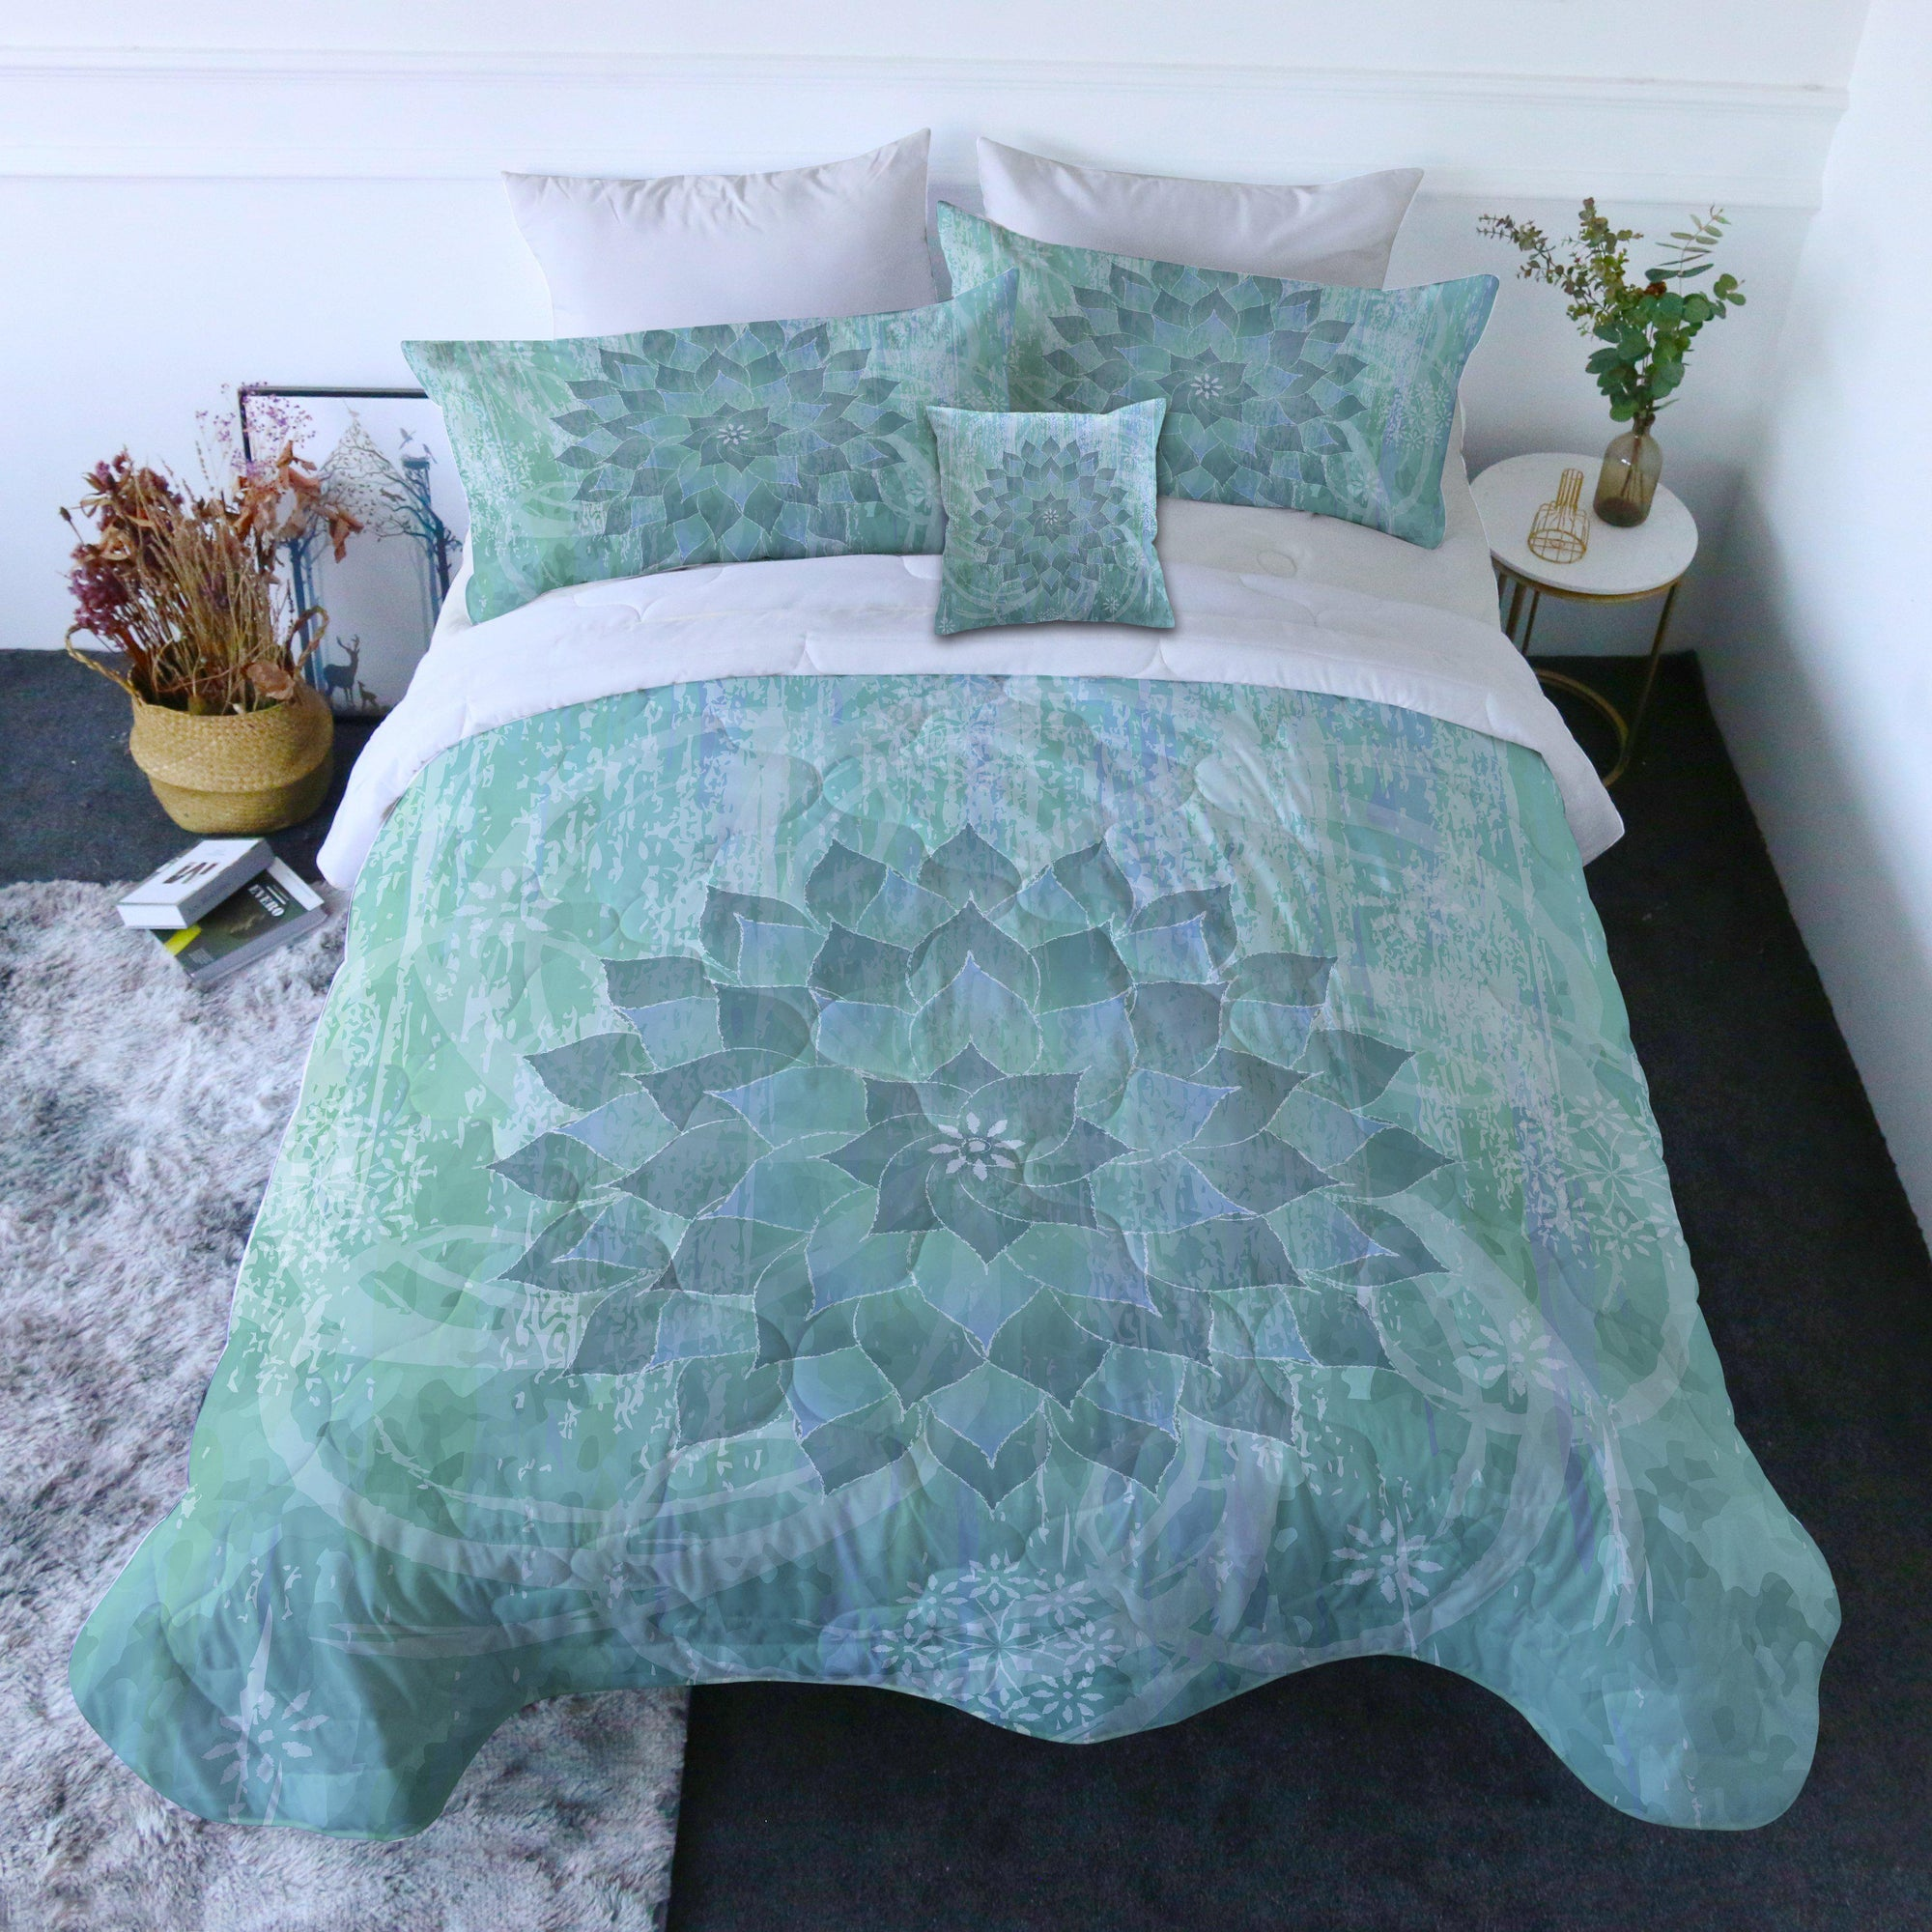 The Ocean Hues Quilt Set